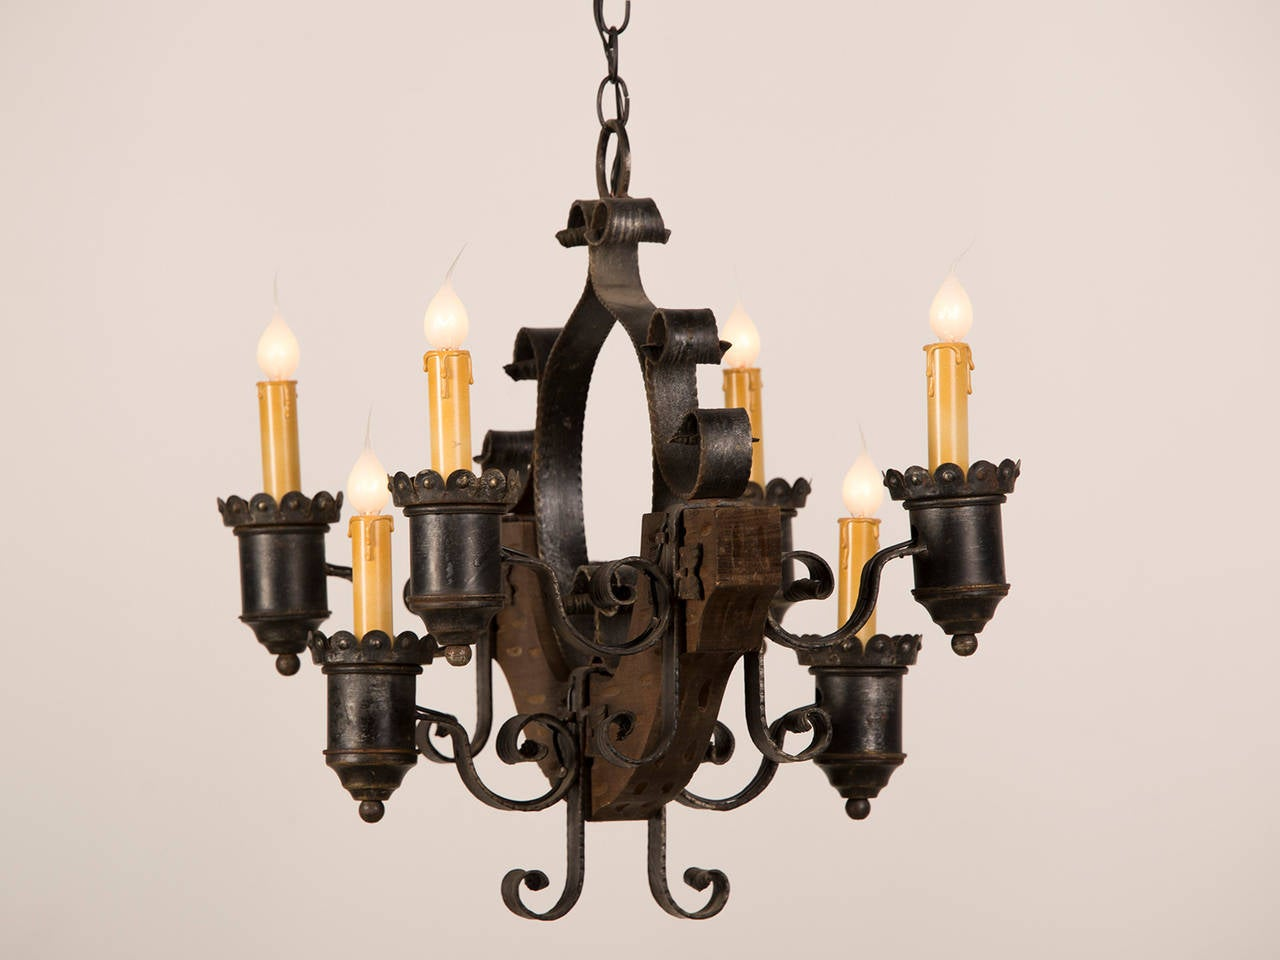 Pair of rustic wood and iron six light chandeliers france circa 1920 at 1stdibs - Circa lighting chandeliers ...